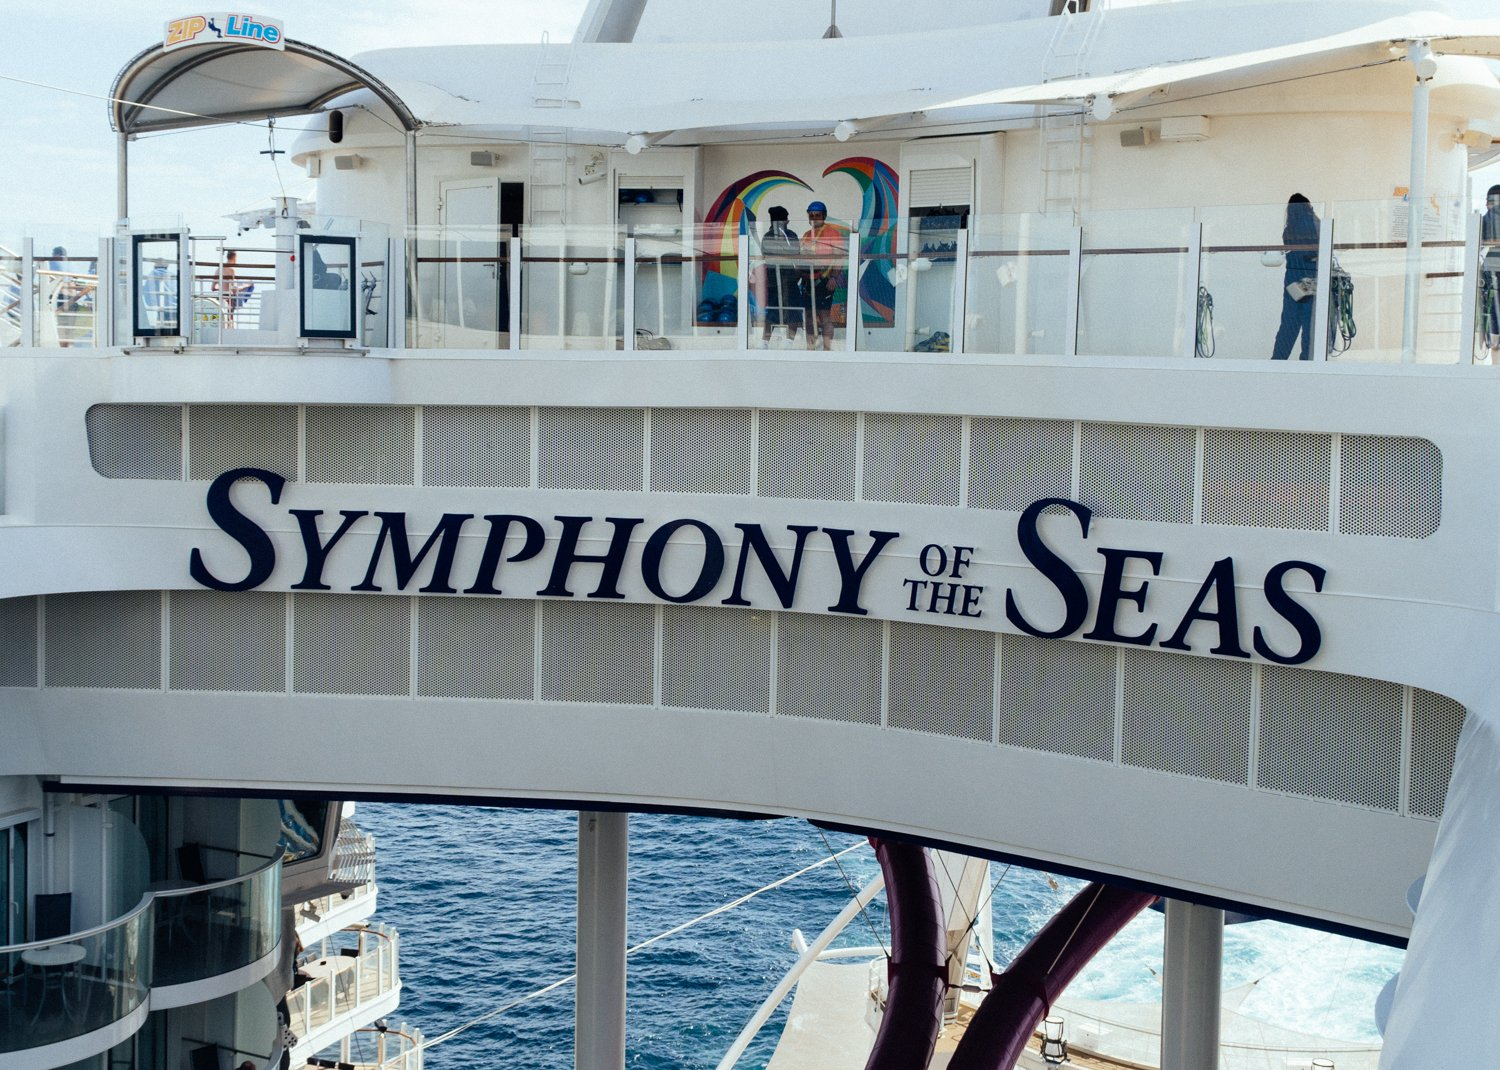 Royal Caribbean Symphony of the Seas   The Stopover by Meaghan Murray   meaghanmurray.com